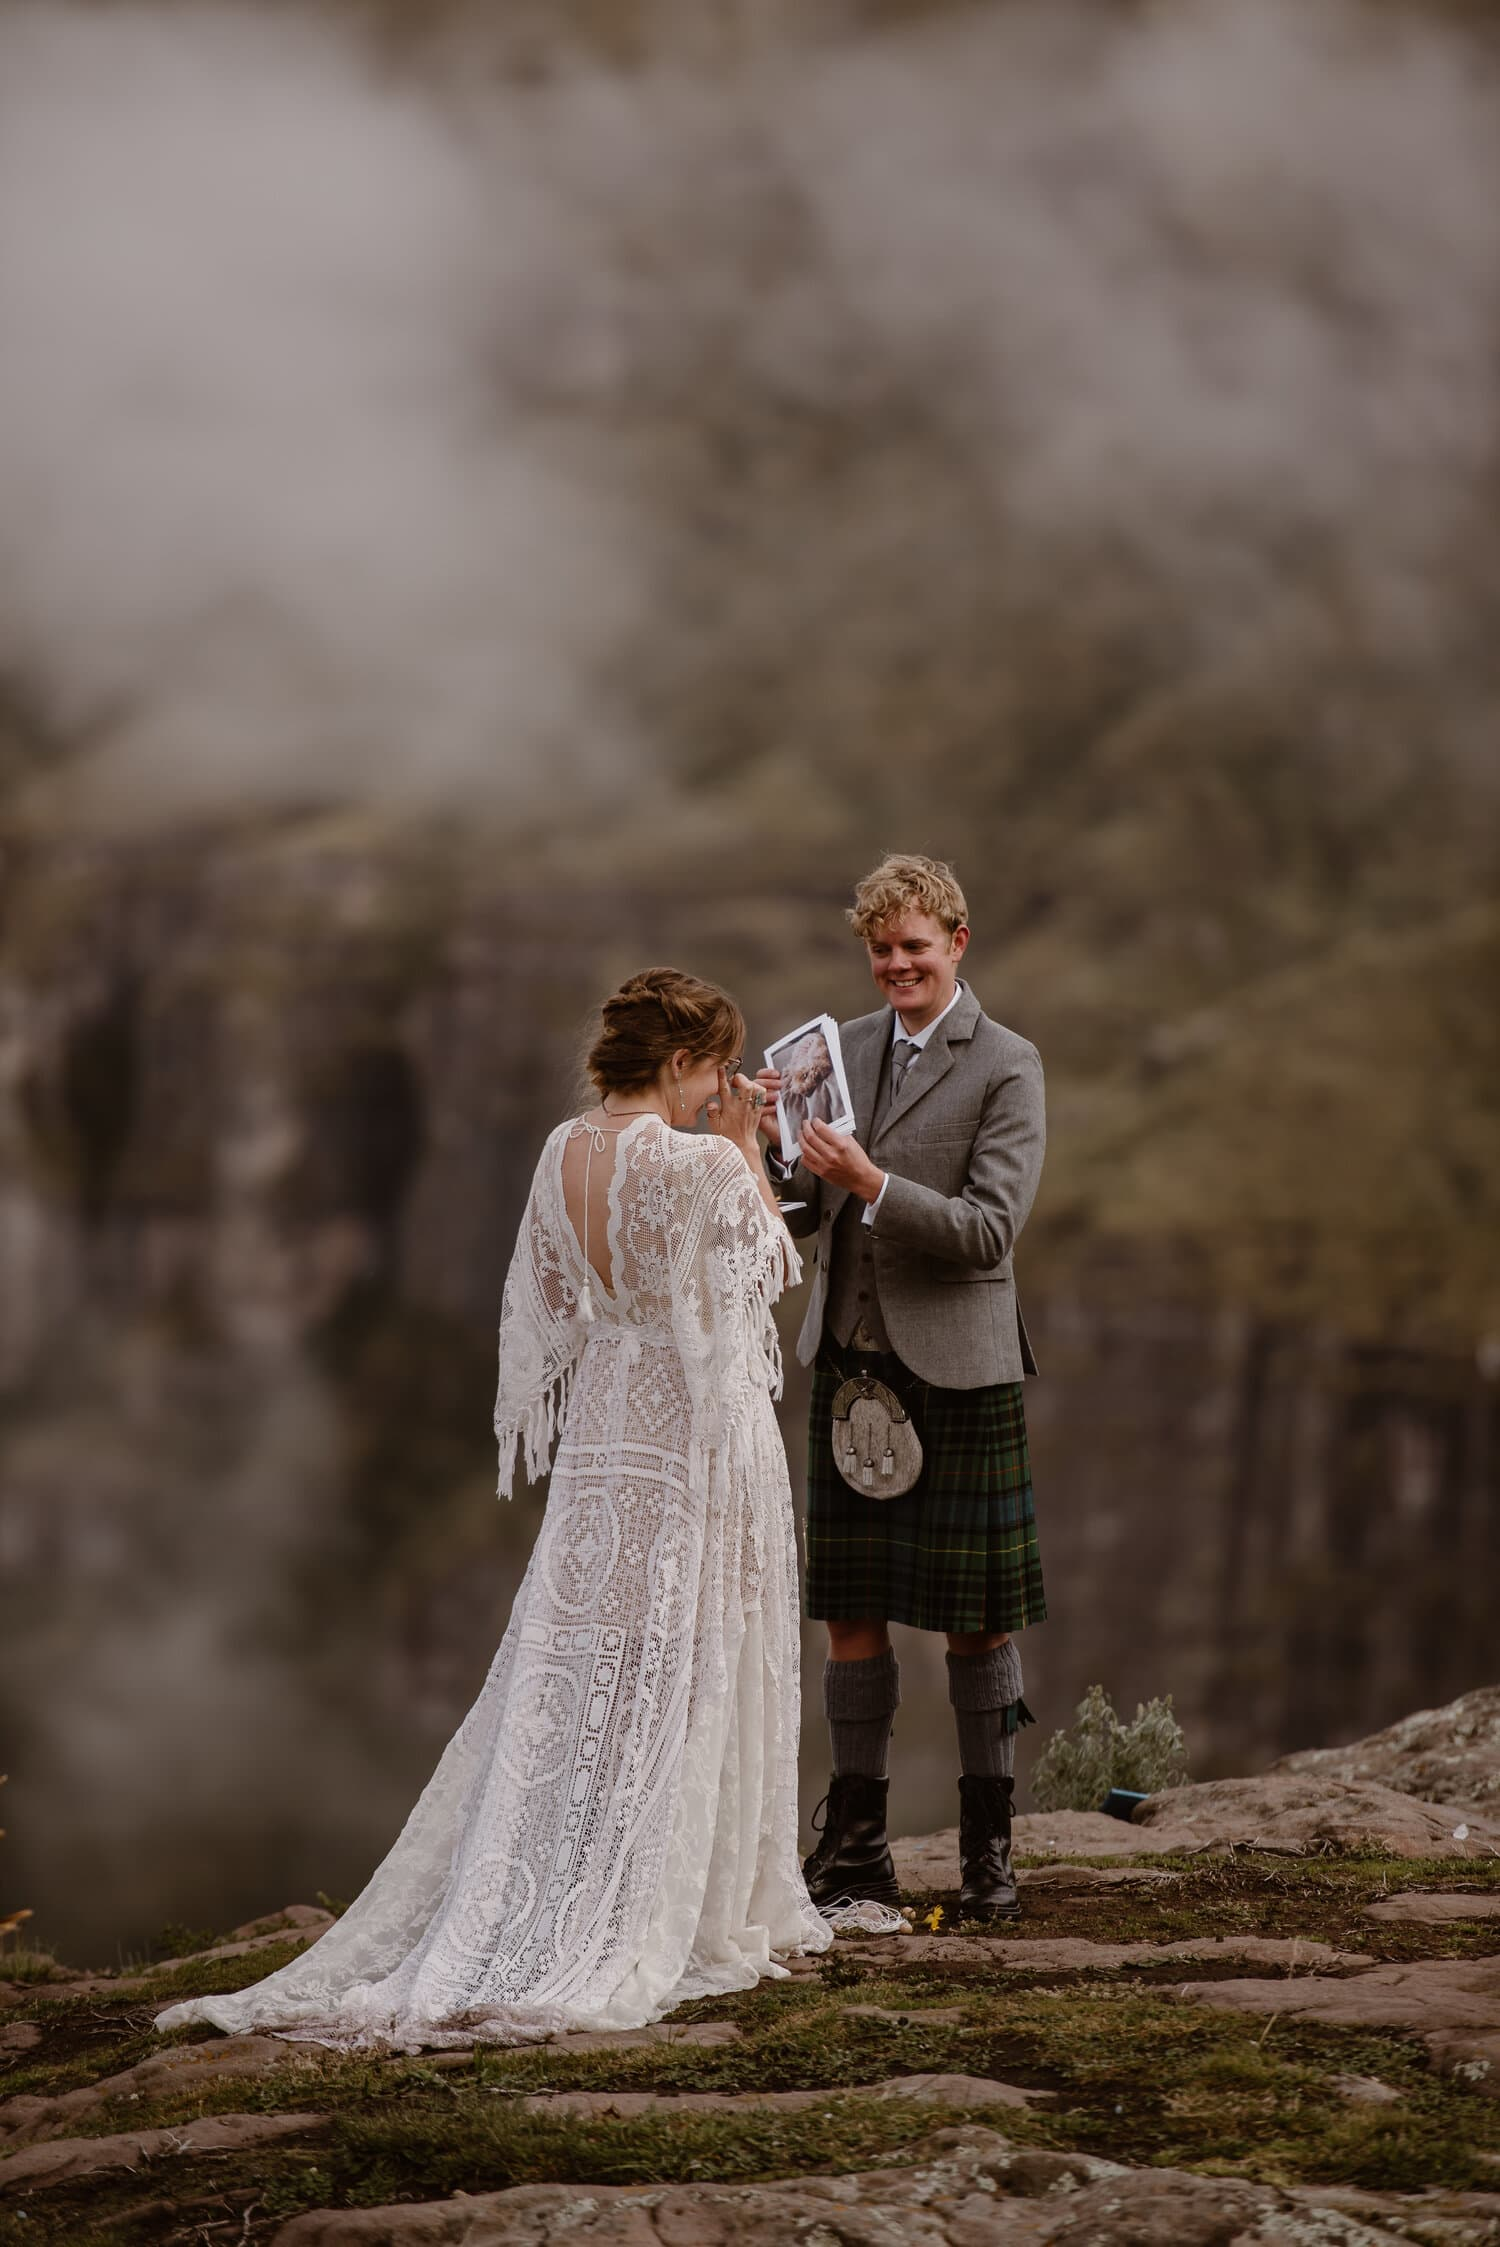 A groom, wearing traditional Scottish wedding attire, shares a photo with his bride as they exchange vows.